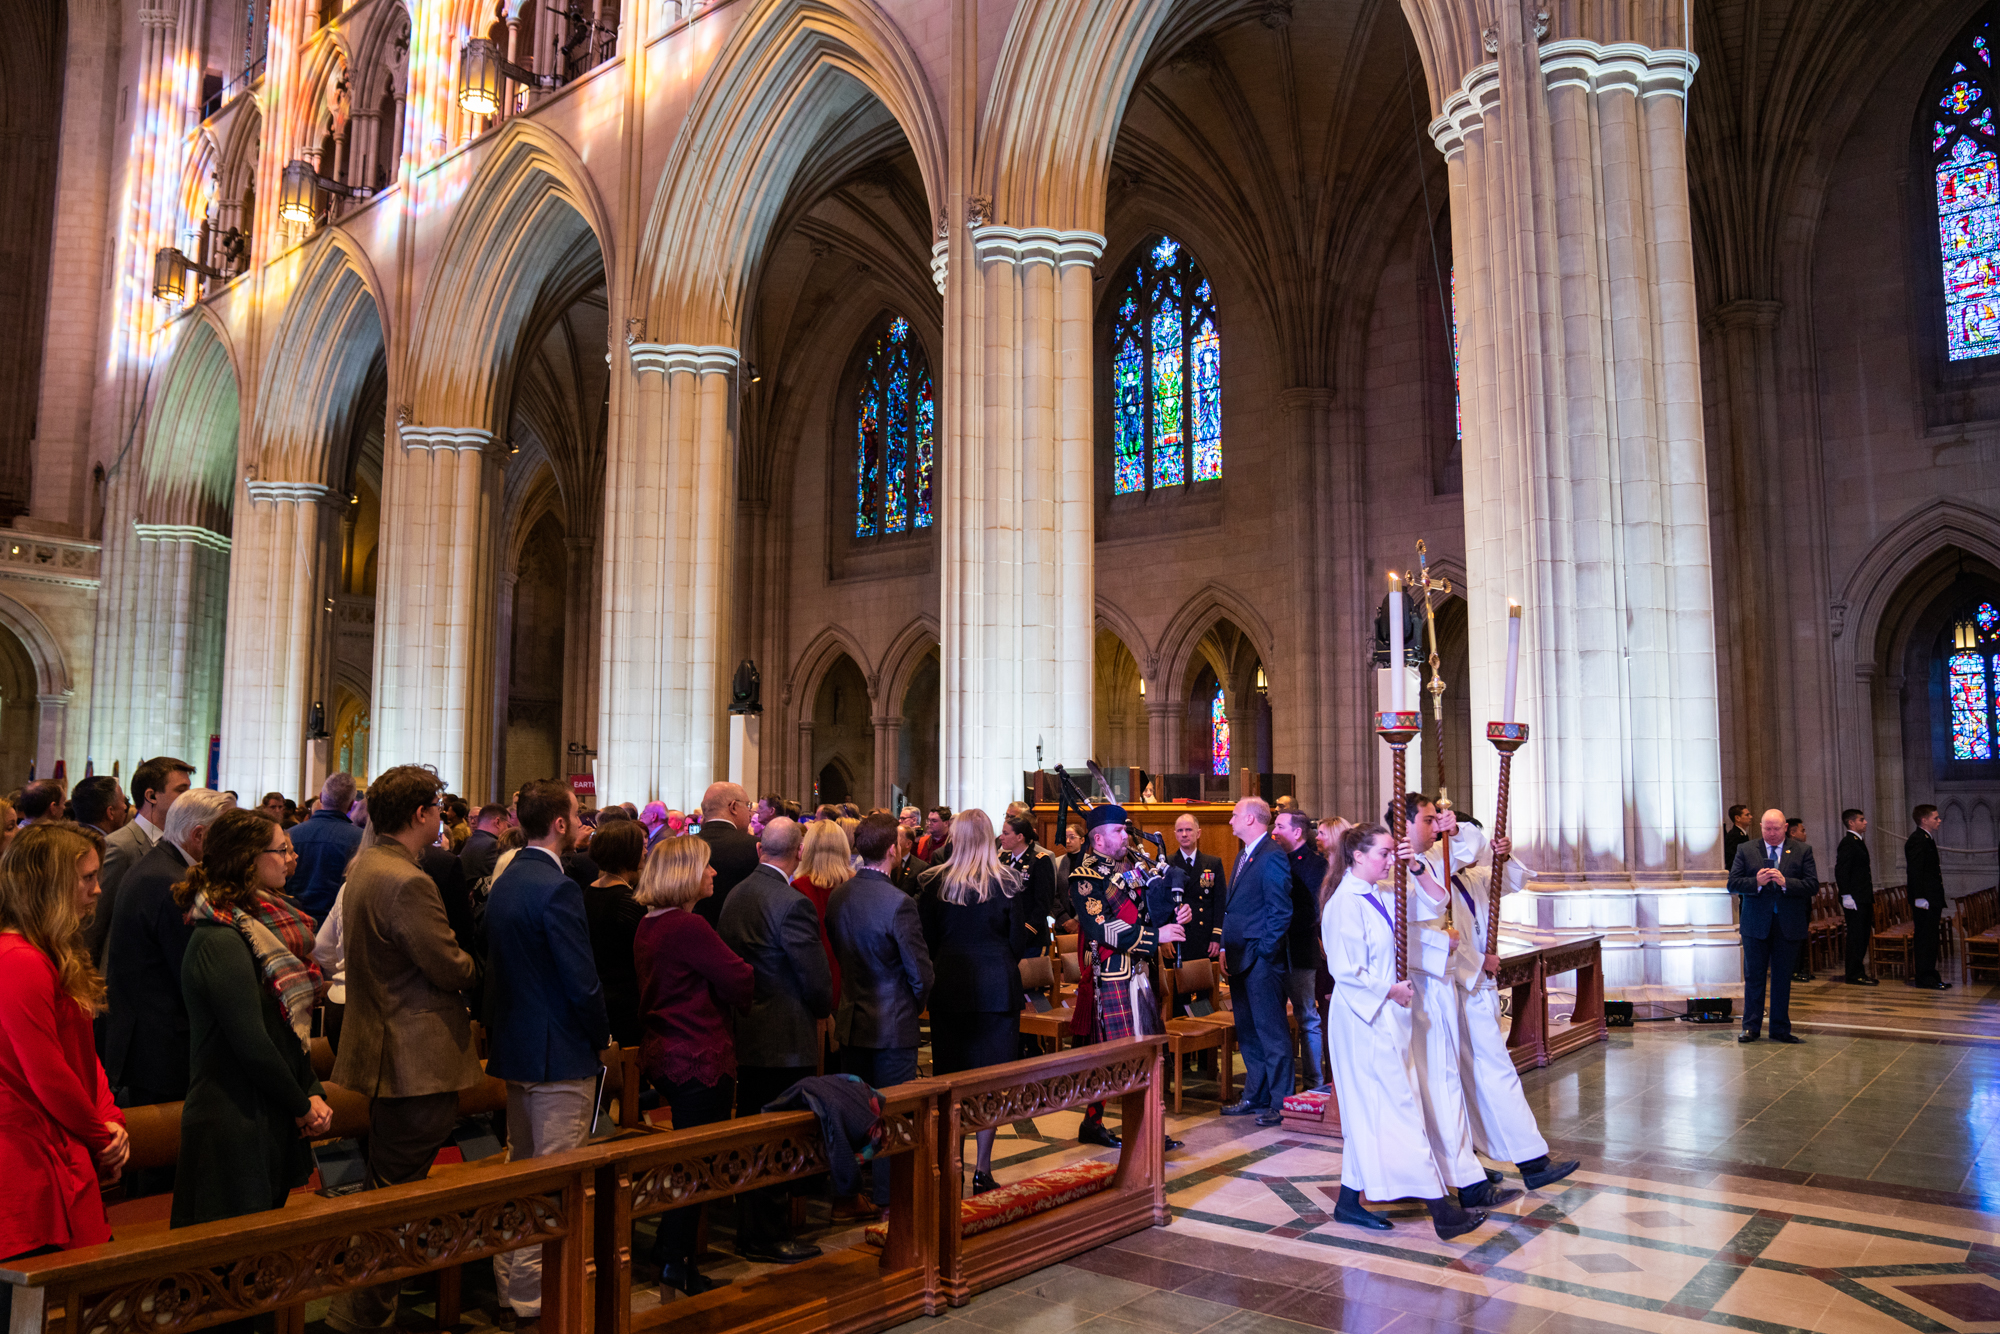 The procession through the cathedral commences the ceremony.